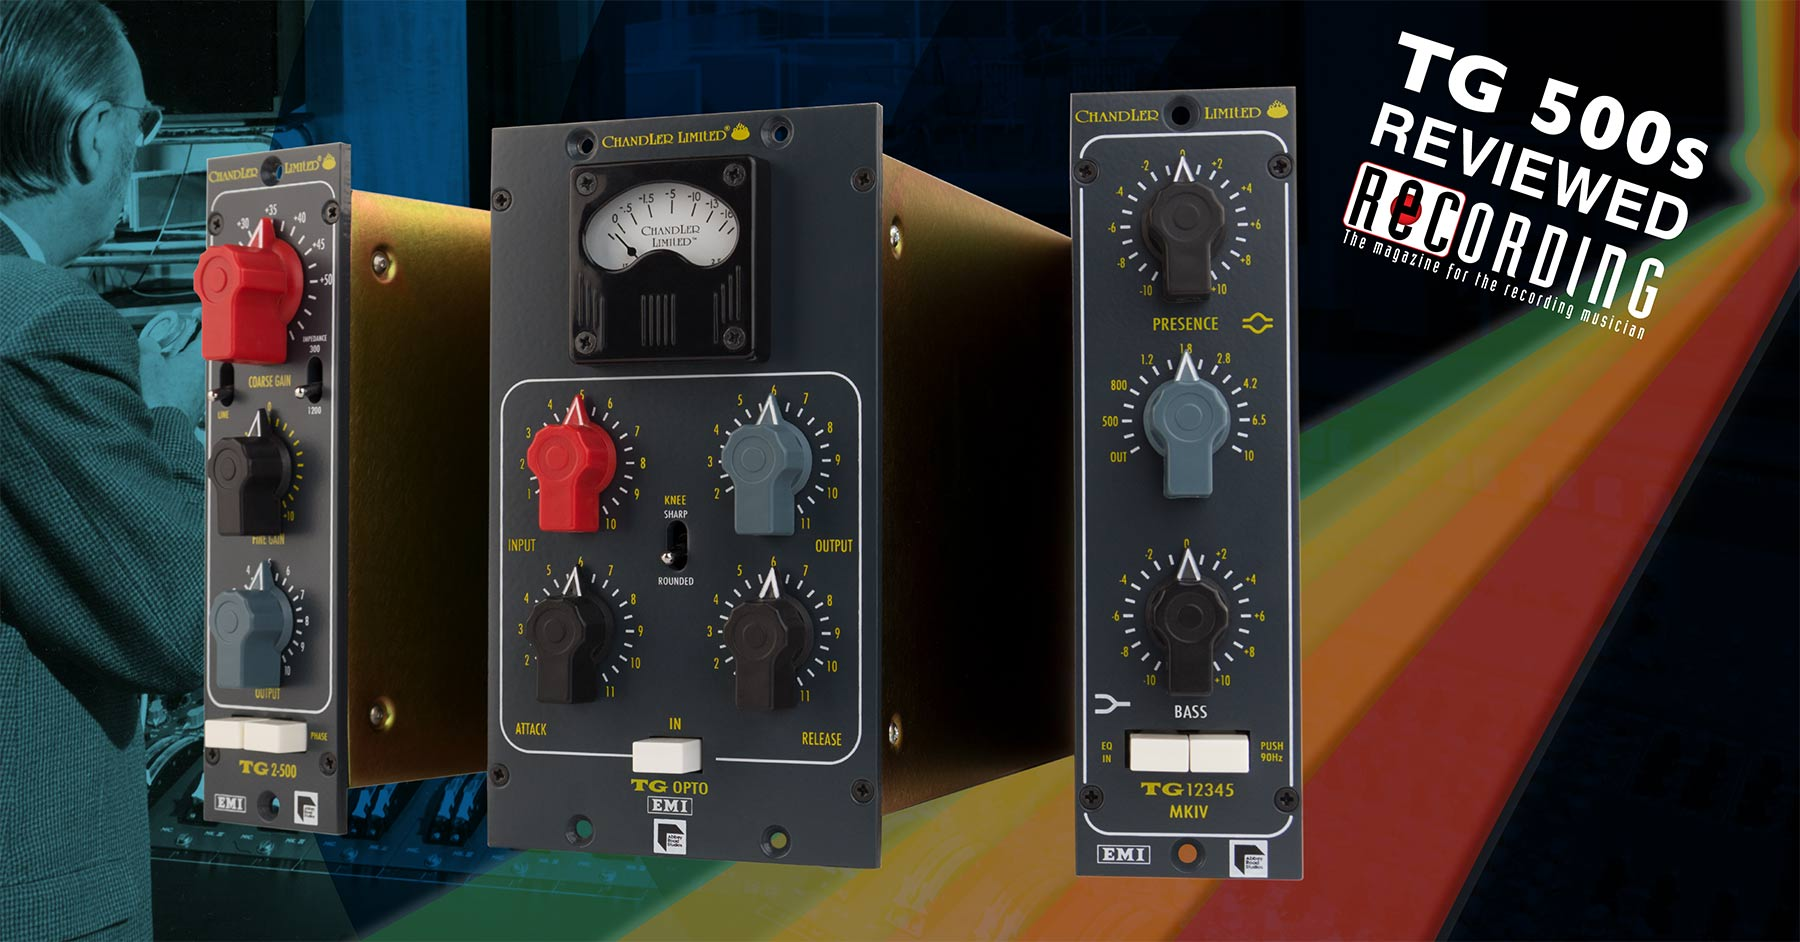 Chandler Limited Abbey Road TG12345 MKIV EQ and TG Opto Compressor, Recording Magazine Review